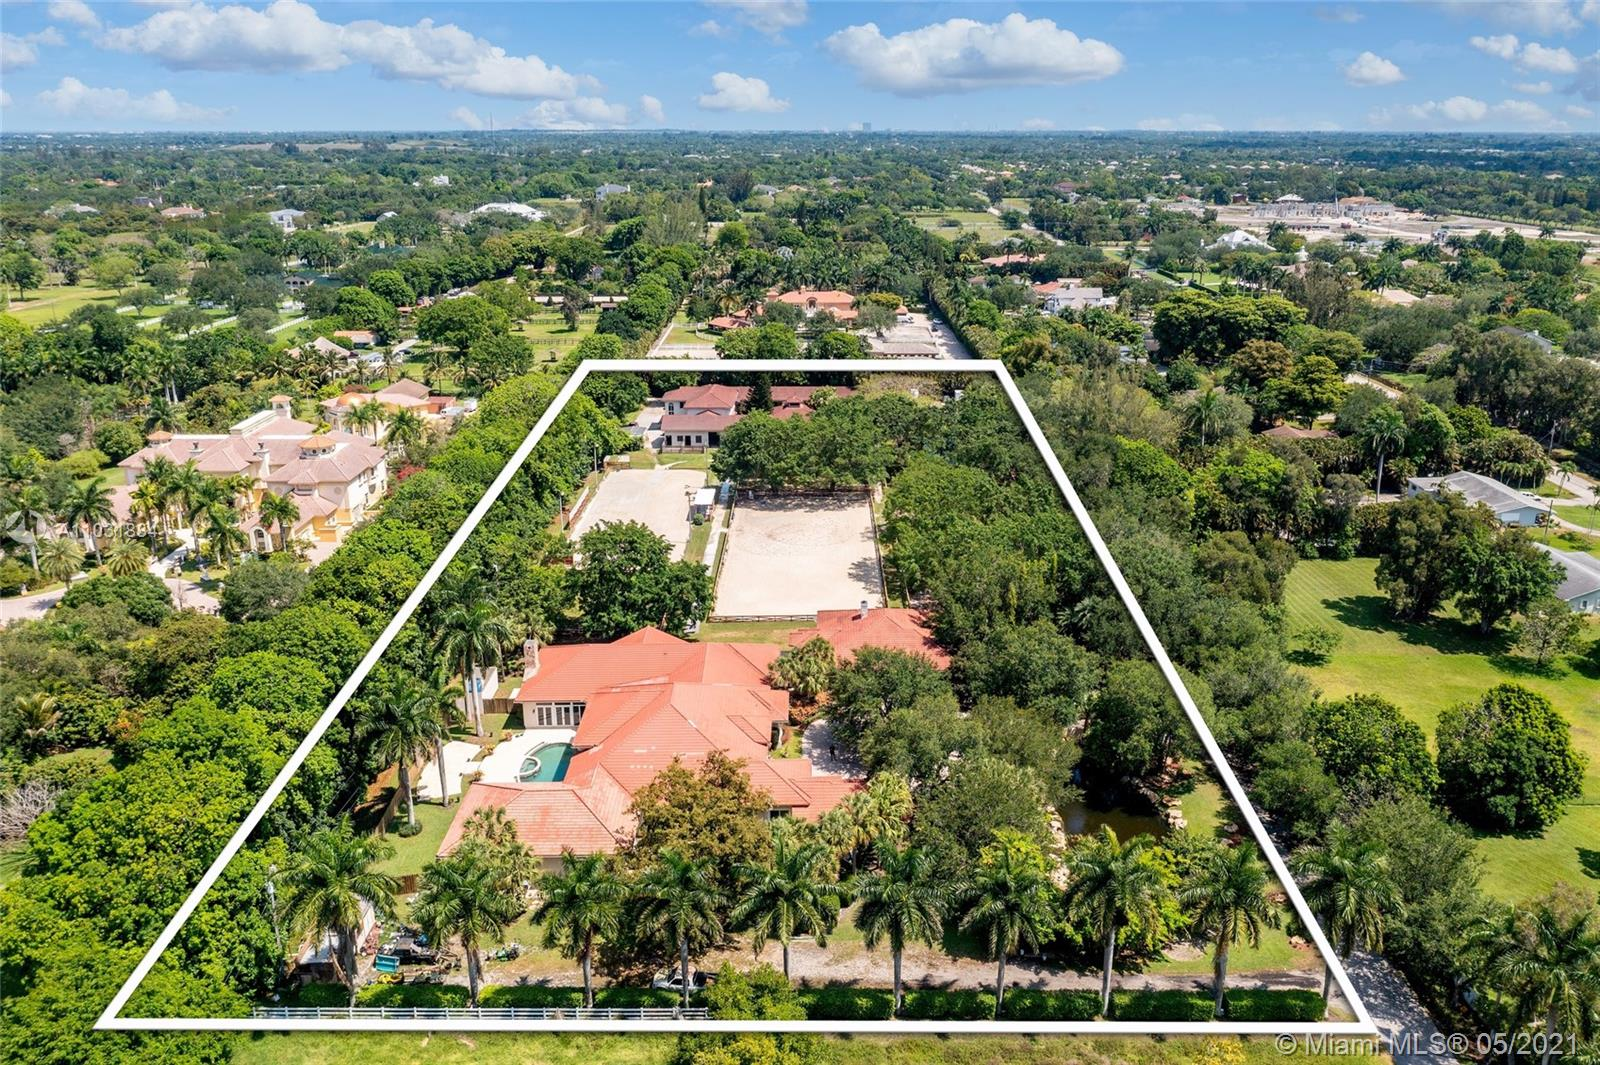 6401 Rodeo Dr, Southwest Ranches, Florida 33330